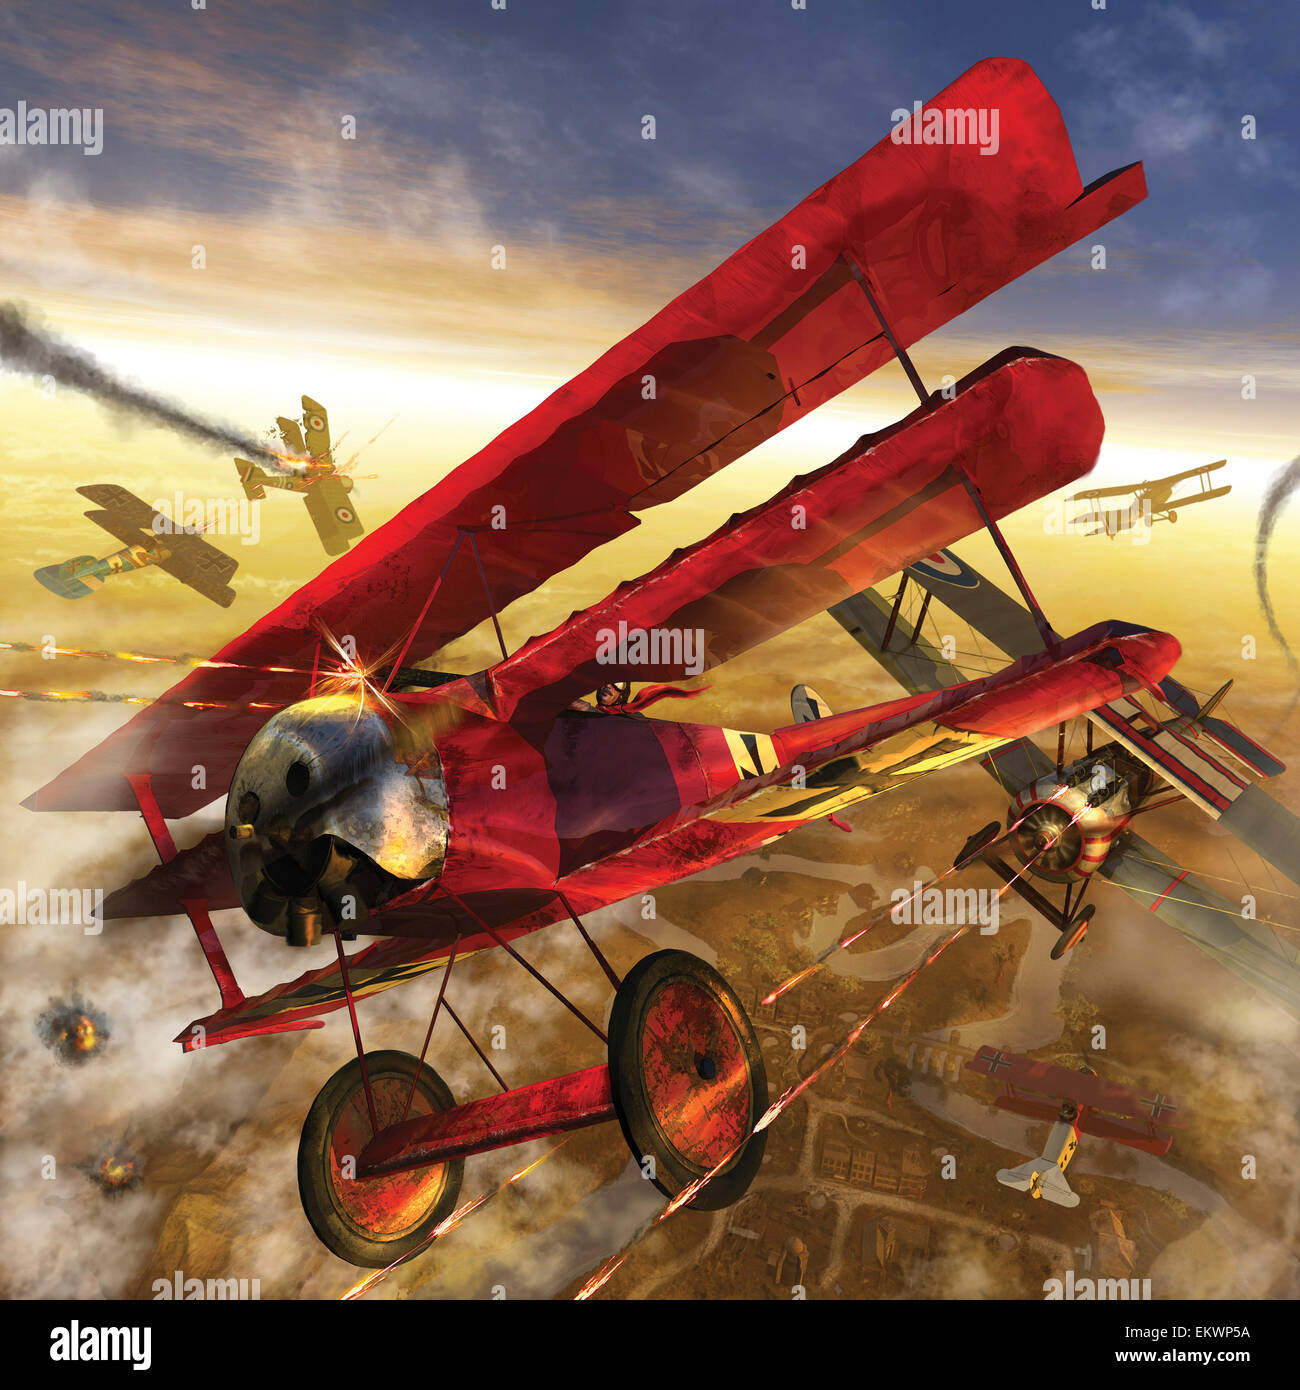 German triple wing bi-plane The Red Baron. World War I western front air assault. - Stock Image